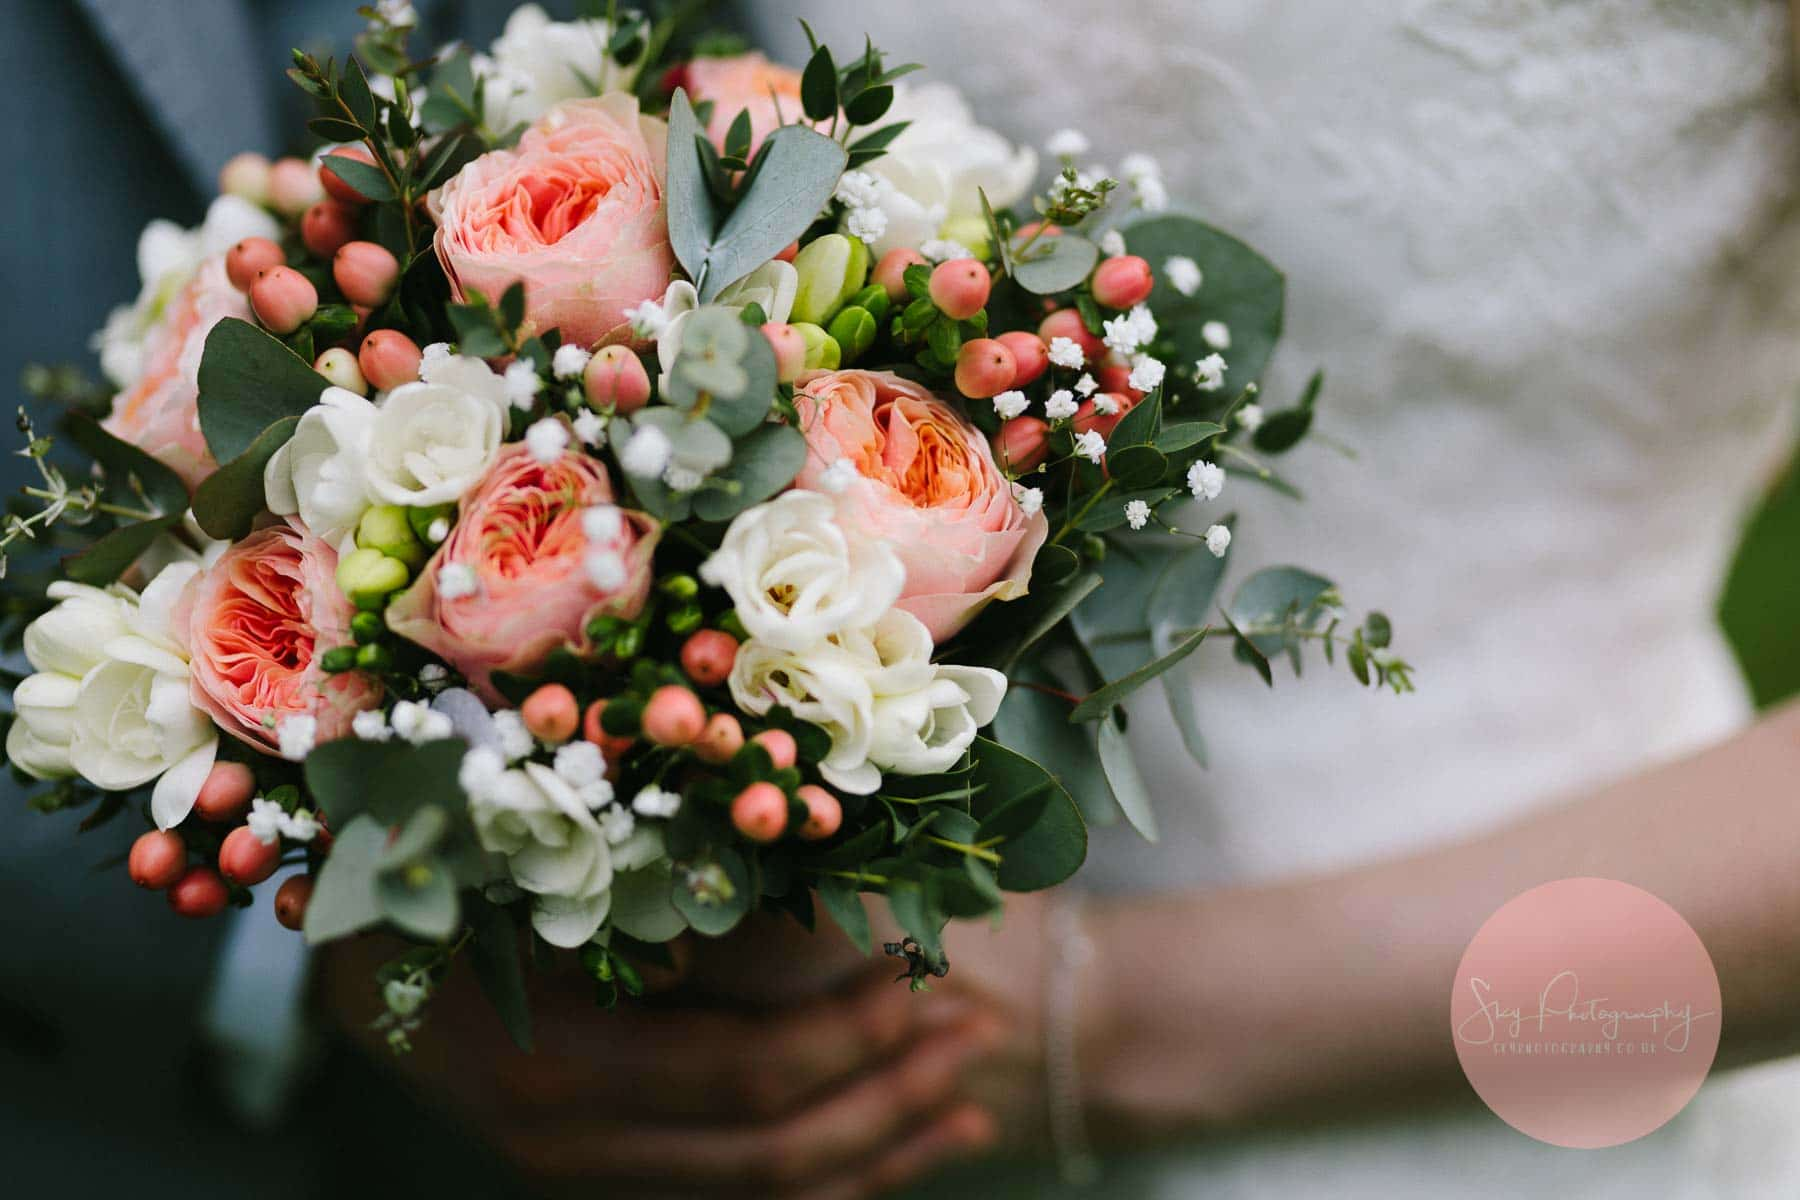 Beautiful Bouquet being held by bride